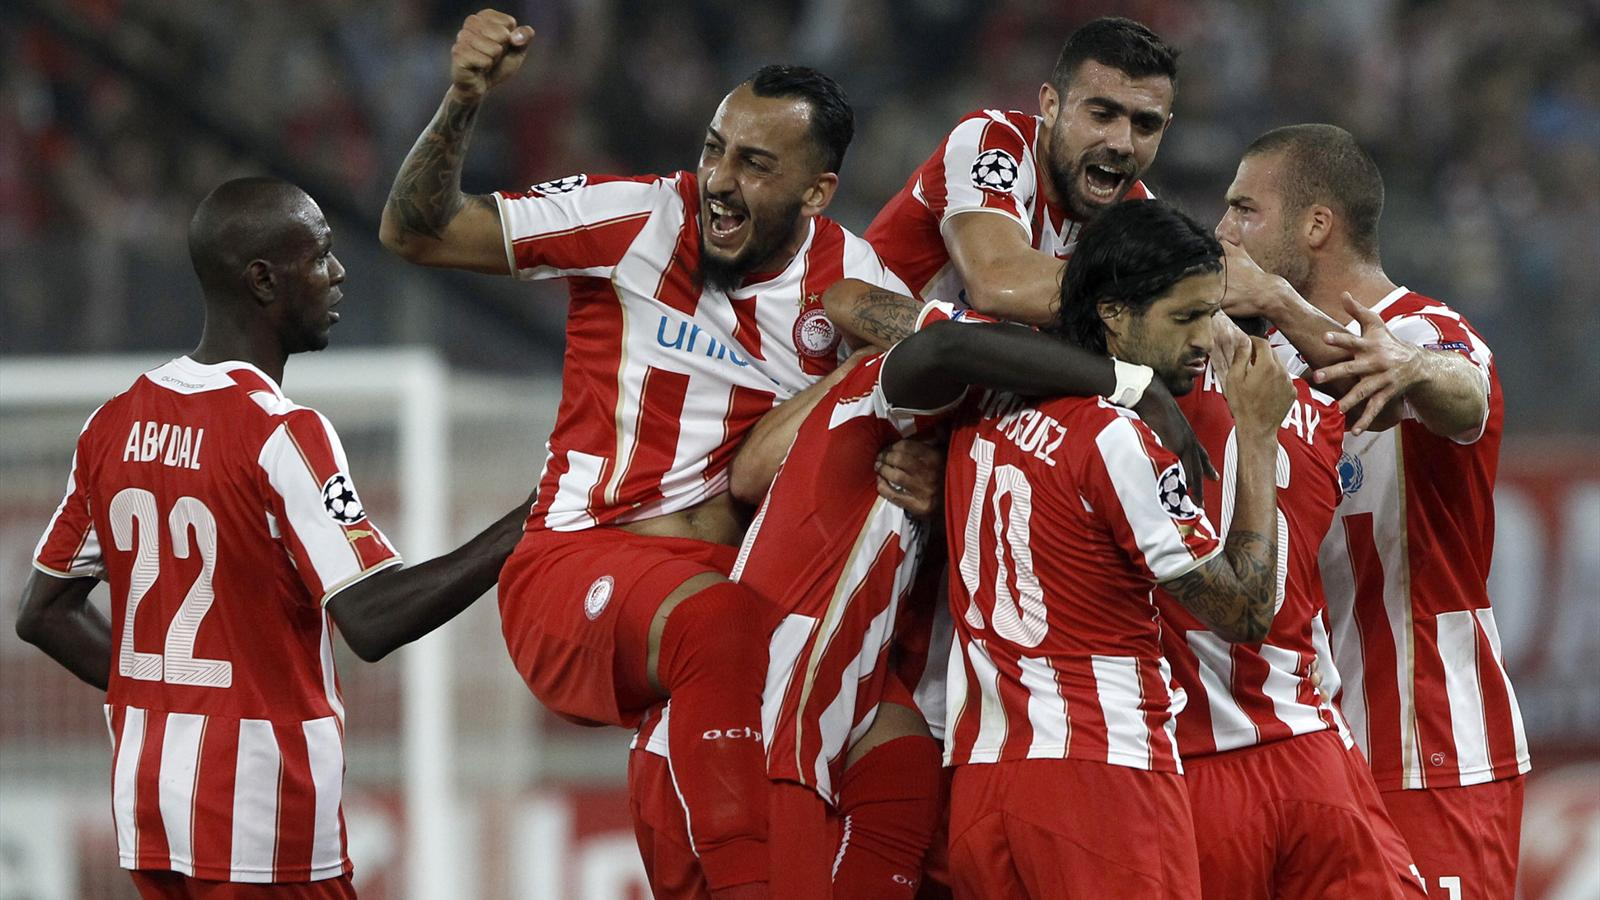 Atletico humbled by Olympiakos in Greece - Champions ...